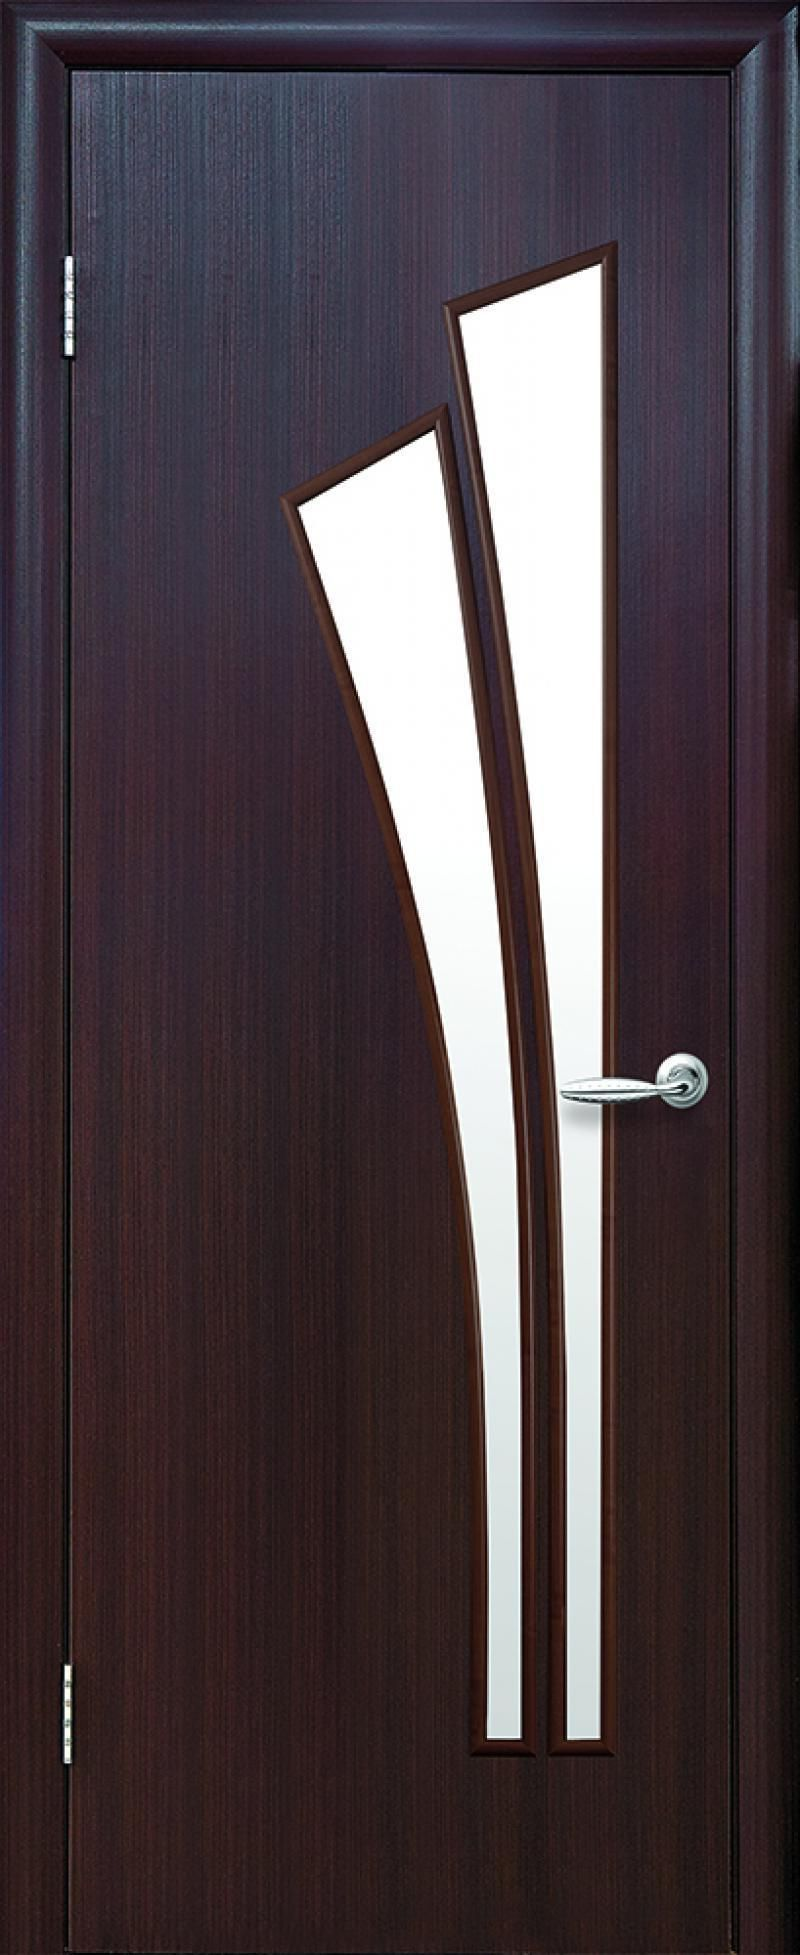 Interior Door Designs create a new look for your room with these closet door ideas Modern Interior Door Design